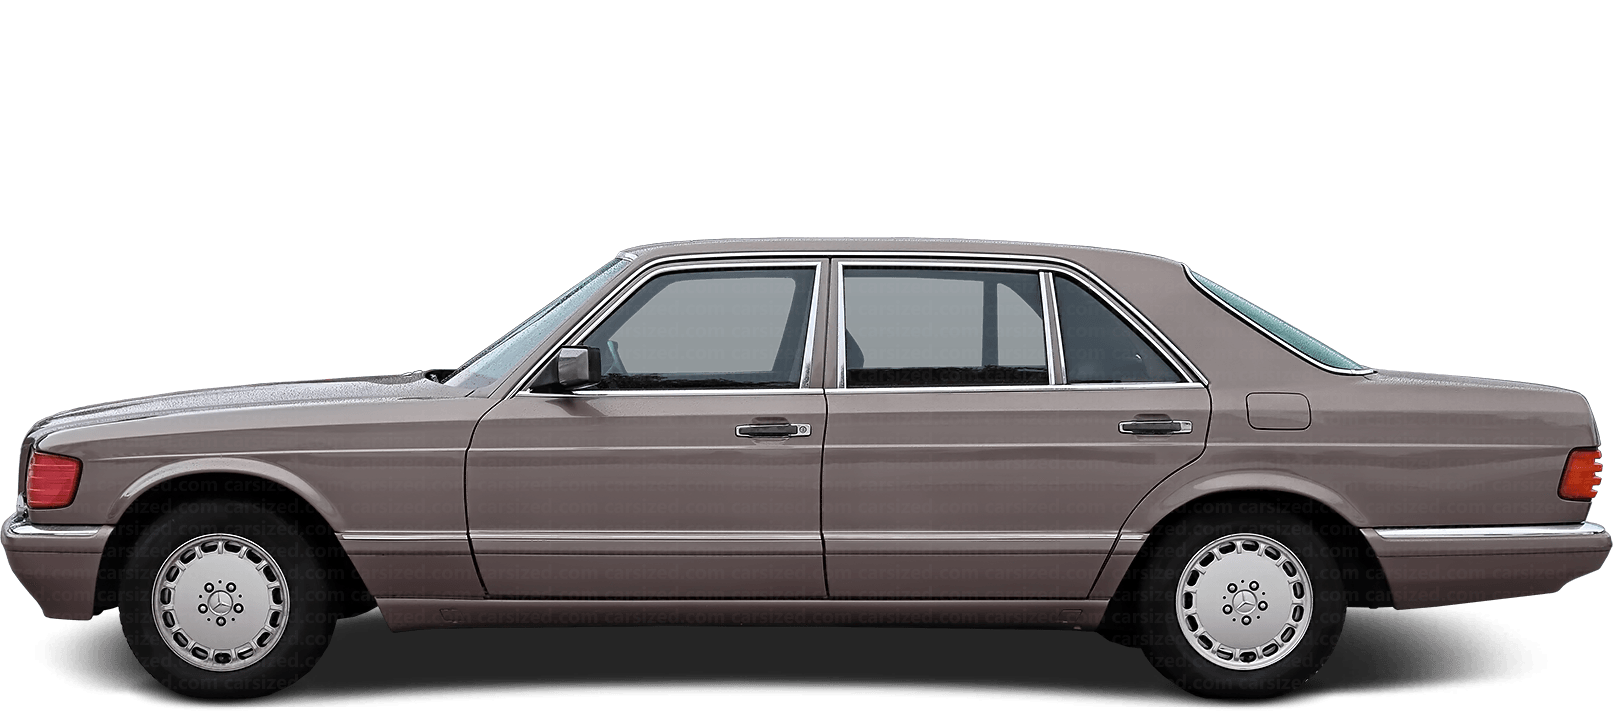 Mercedes-Benz S-Class Sedan LWB 1979 - 1981